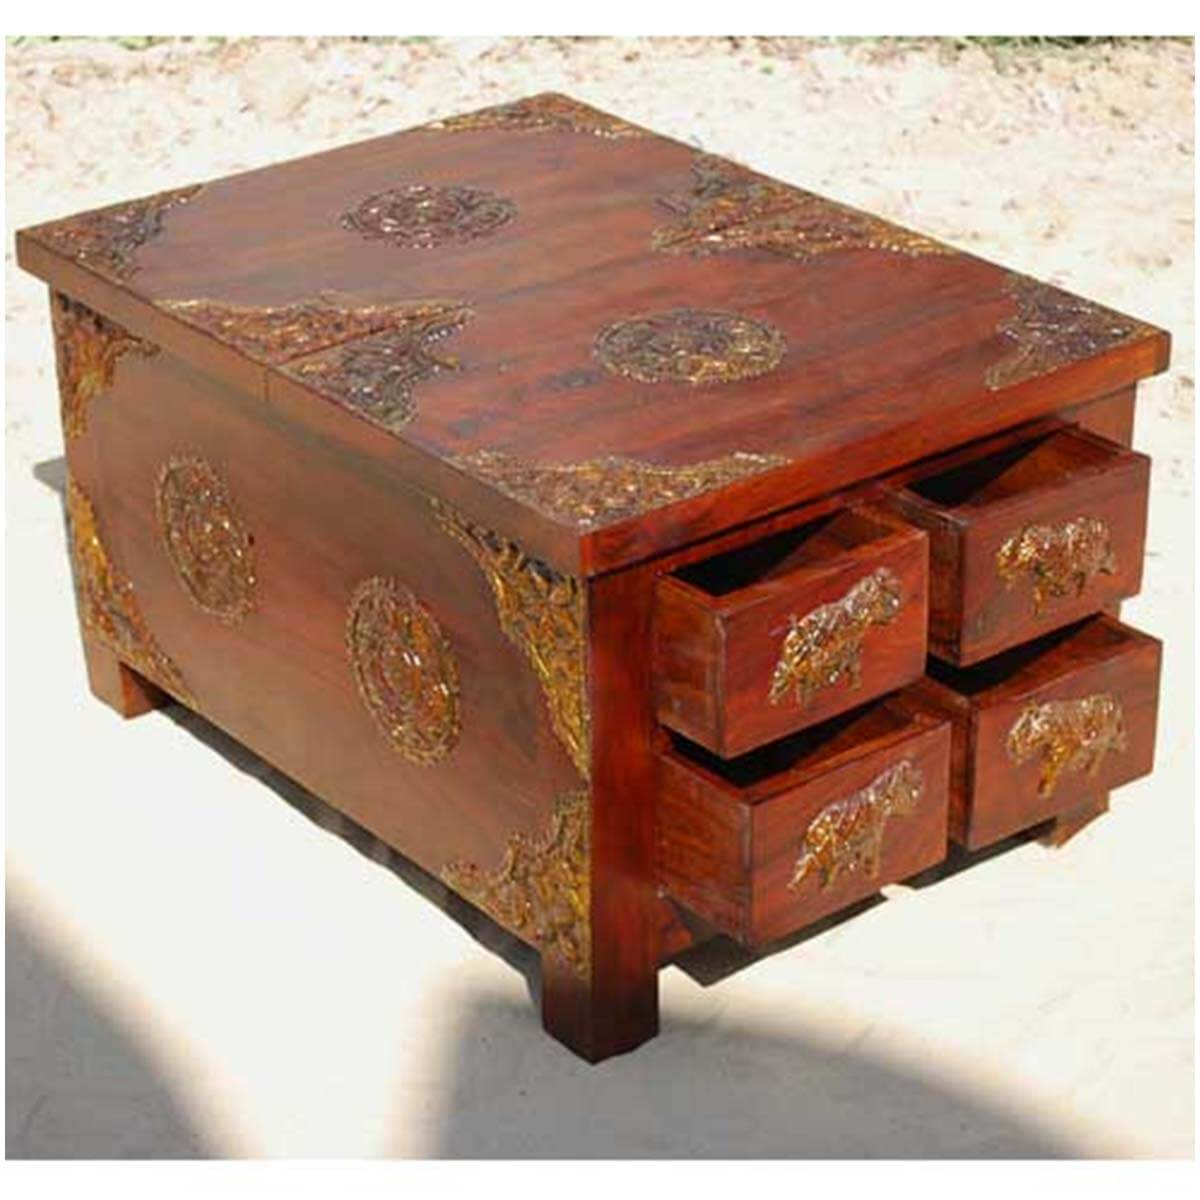 Buy Coffee Table With Drawers: Rustic Wood 4 Storage Drawers Brass Accent Coffee Table